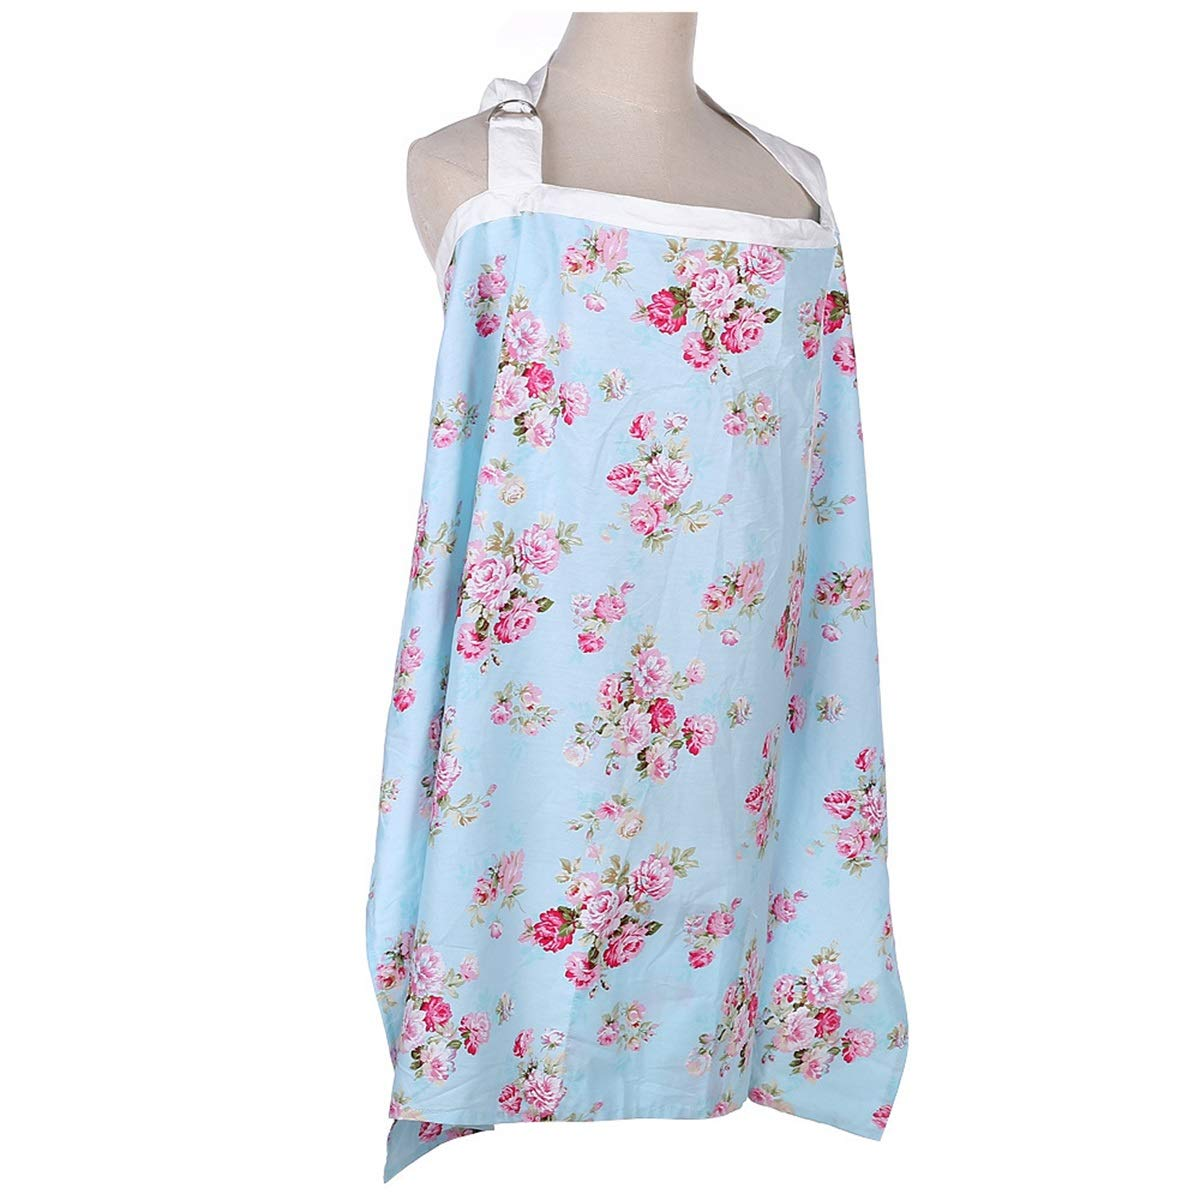 Nursing Cover for Breastfeeding Infants Color : White Flower Apron Cover Up for Breast Feeding Babies,Covers Up Newborns in Public